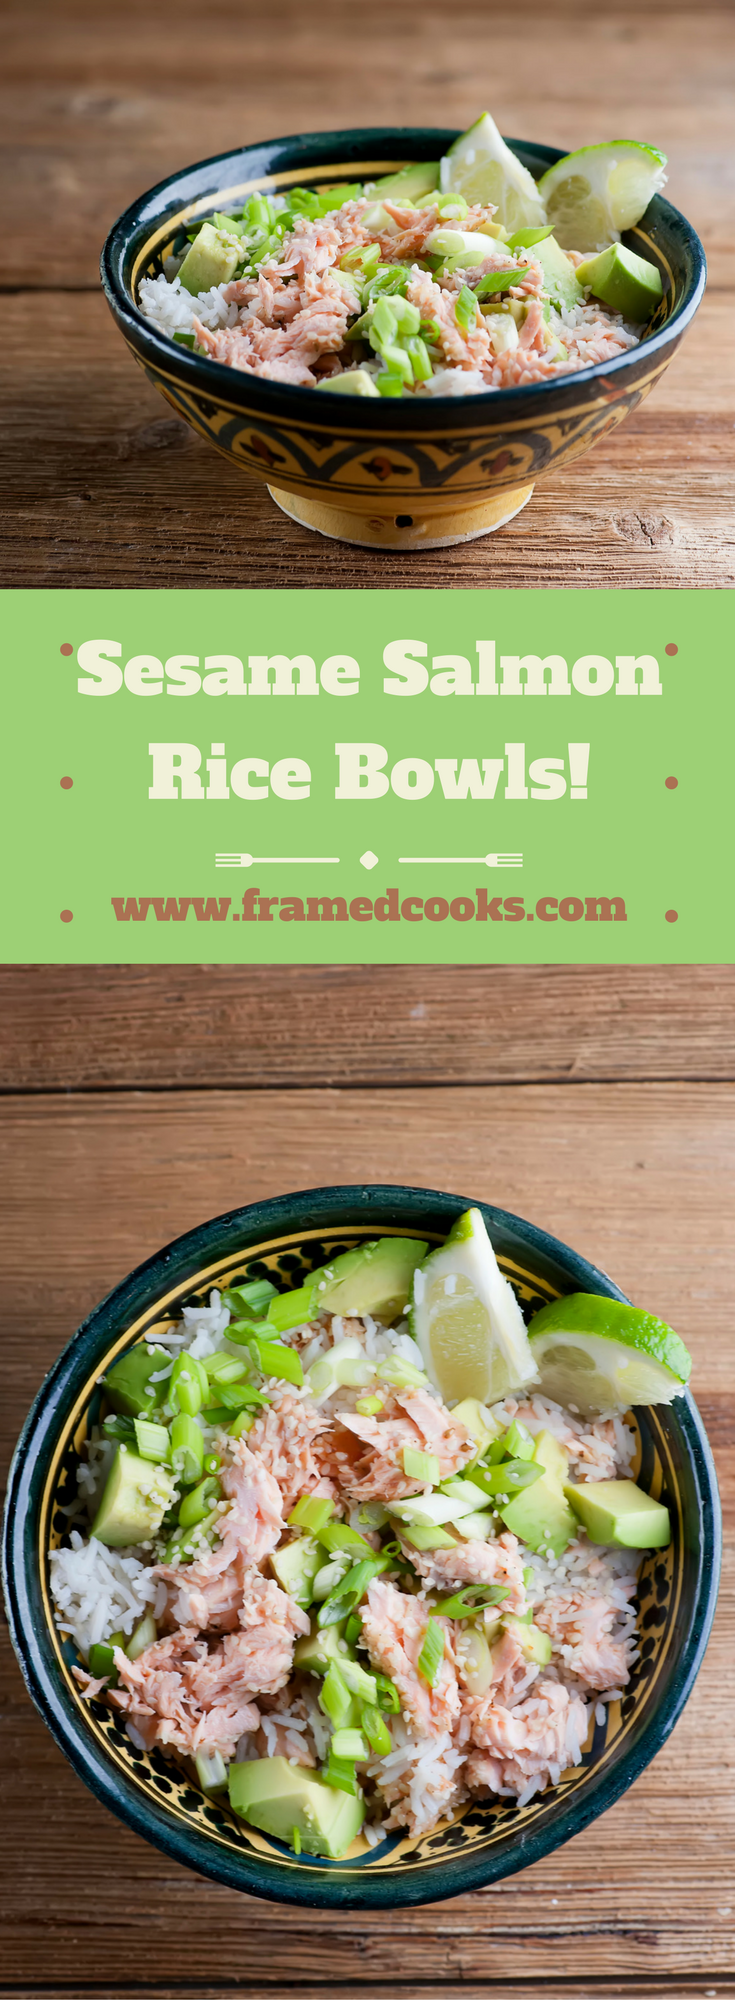 This quick and easy recipe for sesame salmon rice bowls is comfort food at its healthy best!